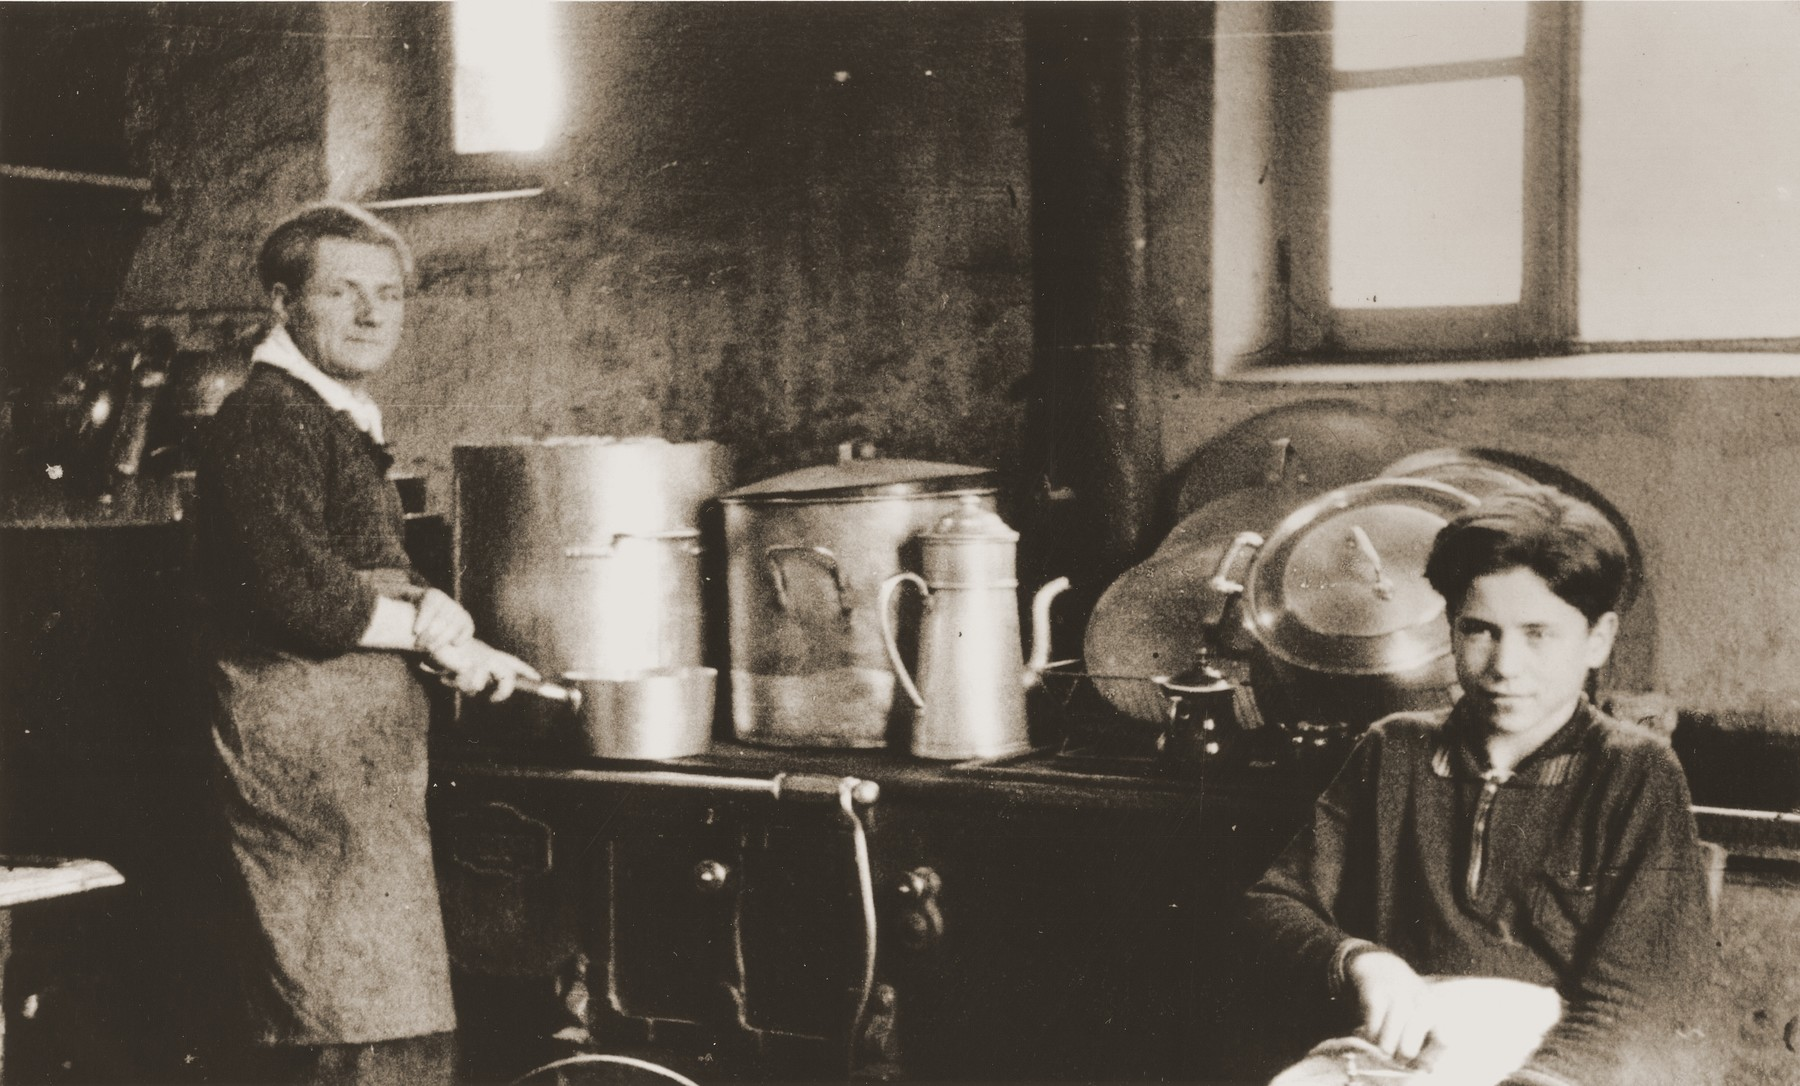 Heinz Stephan Lewy works in the kitchen of the Château de Chabannes OSE (Oeuvre de secours aux Enfants) children's home.